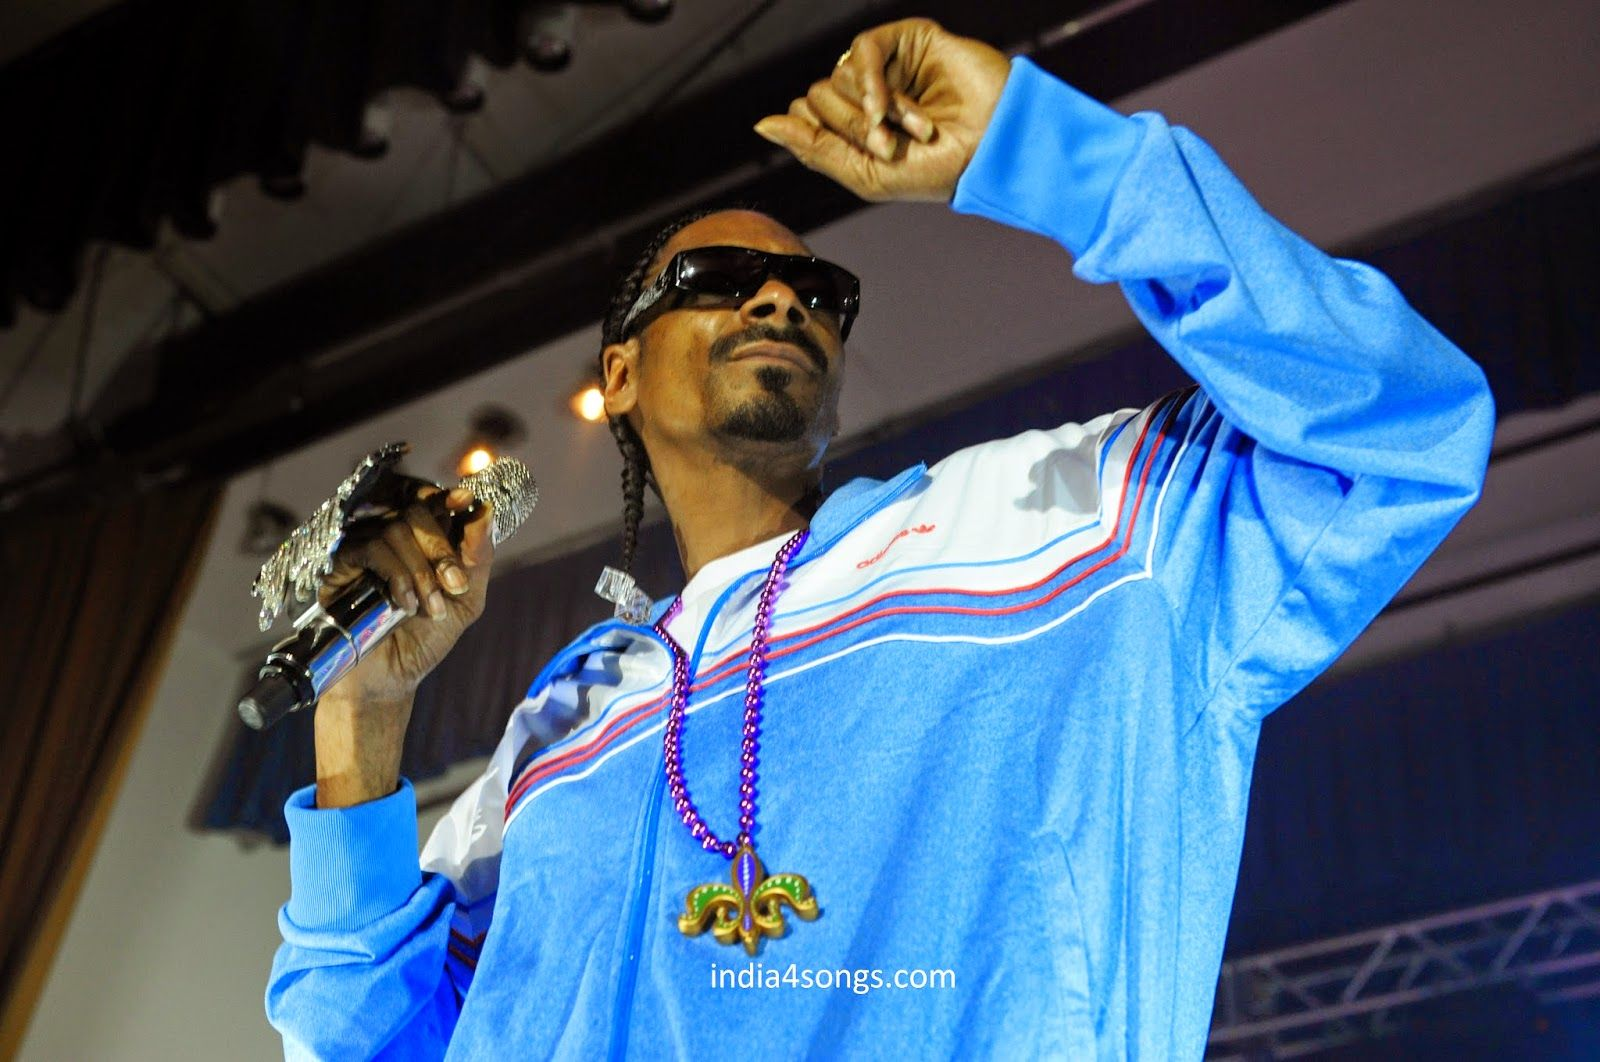 Snoopy Dog Who Let The Dogs Out Mp3 Song Download Free Songs Pk Download Latest Mp3 Songs Mp3 Songs Online Donload Mp3 Songs Snoop Dogg Dogg Nate Dogg